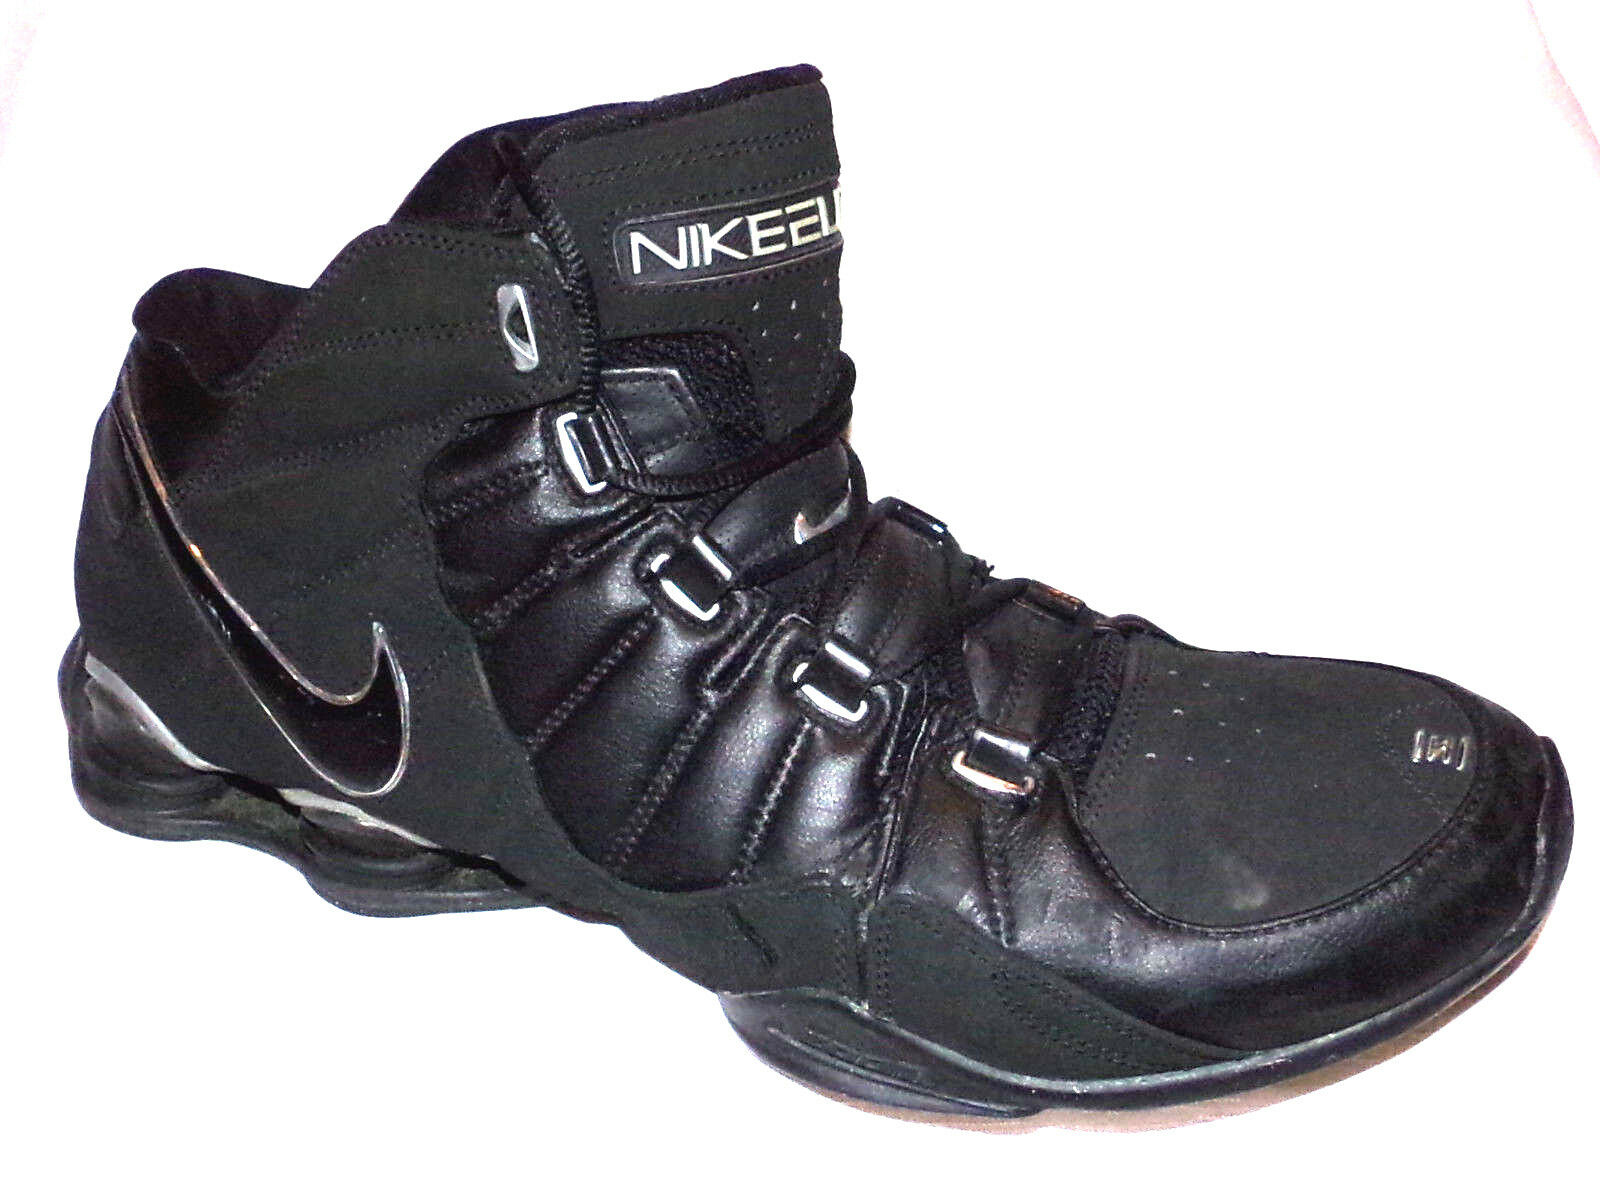 NIKE MENS ELITE FLIGHT SHOX BASKETBALL SHOES IN BLACK WITH 99% TREAD SIZE-13